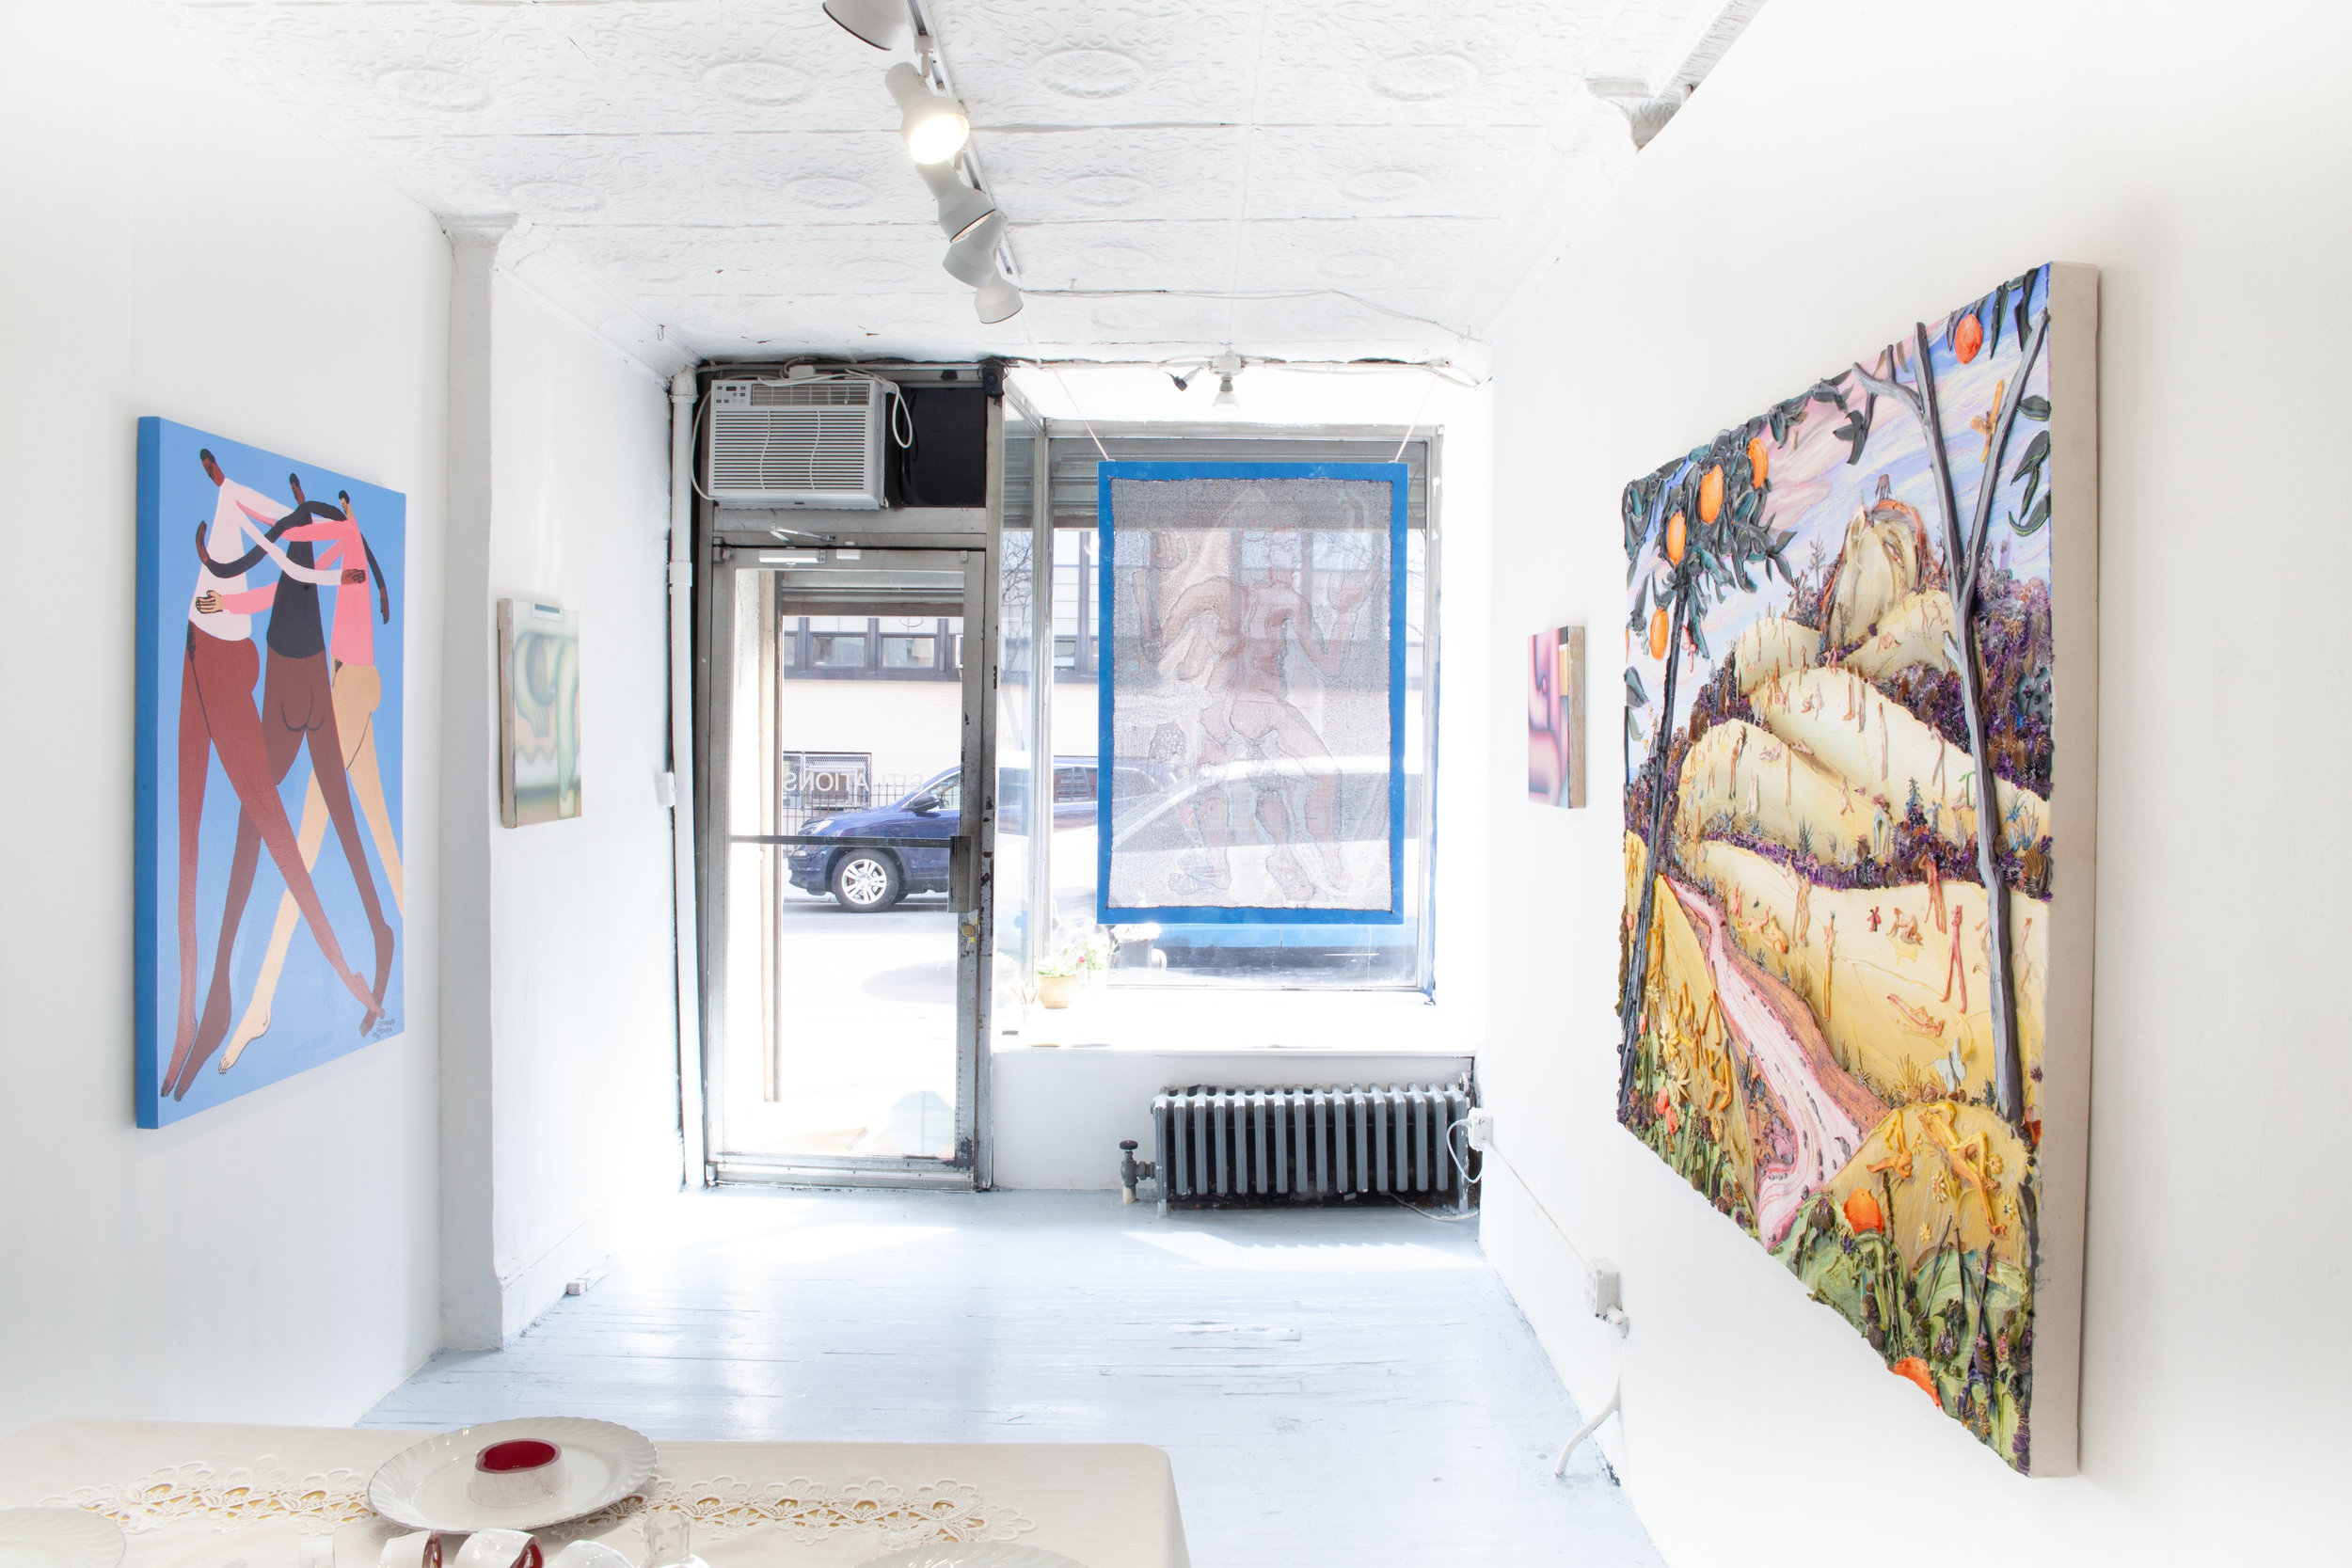 Installation view: SITUATIONS,  Fresh Fruit , 2019